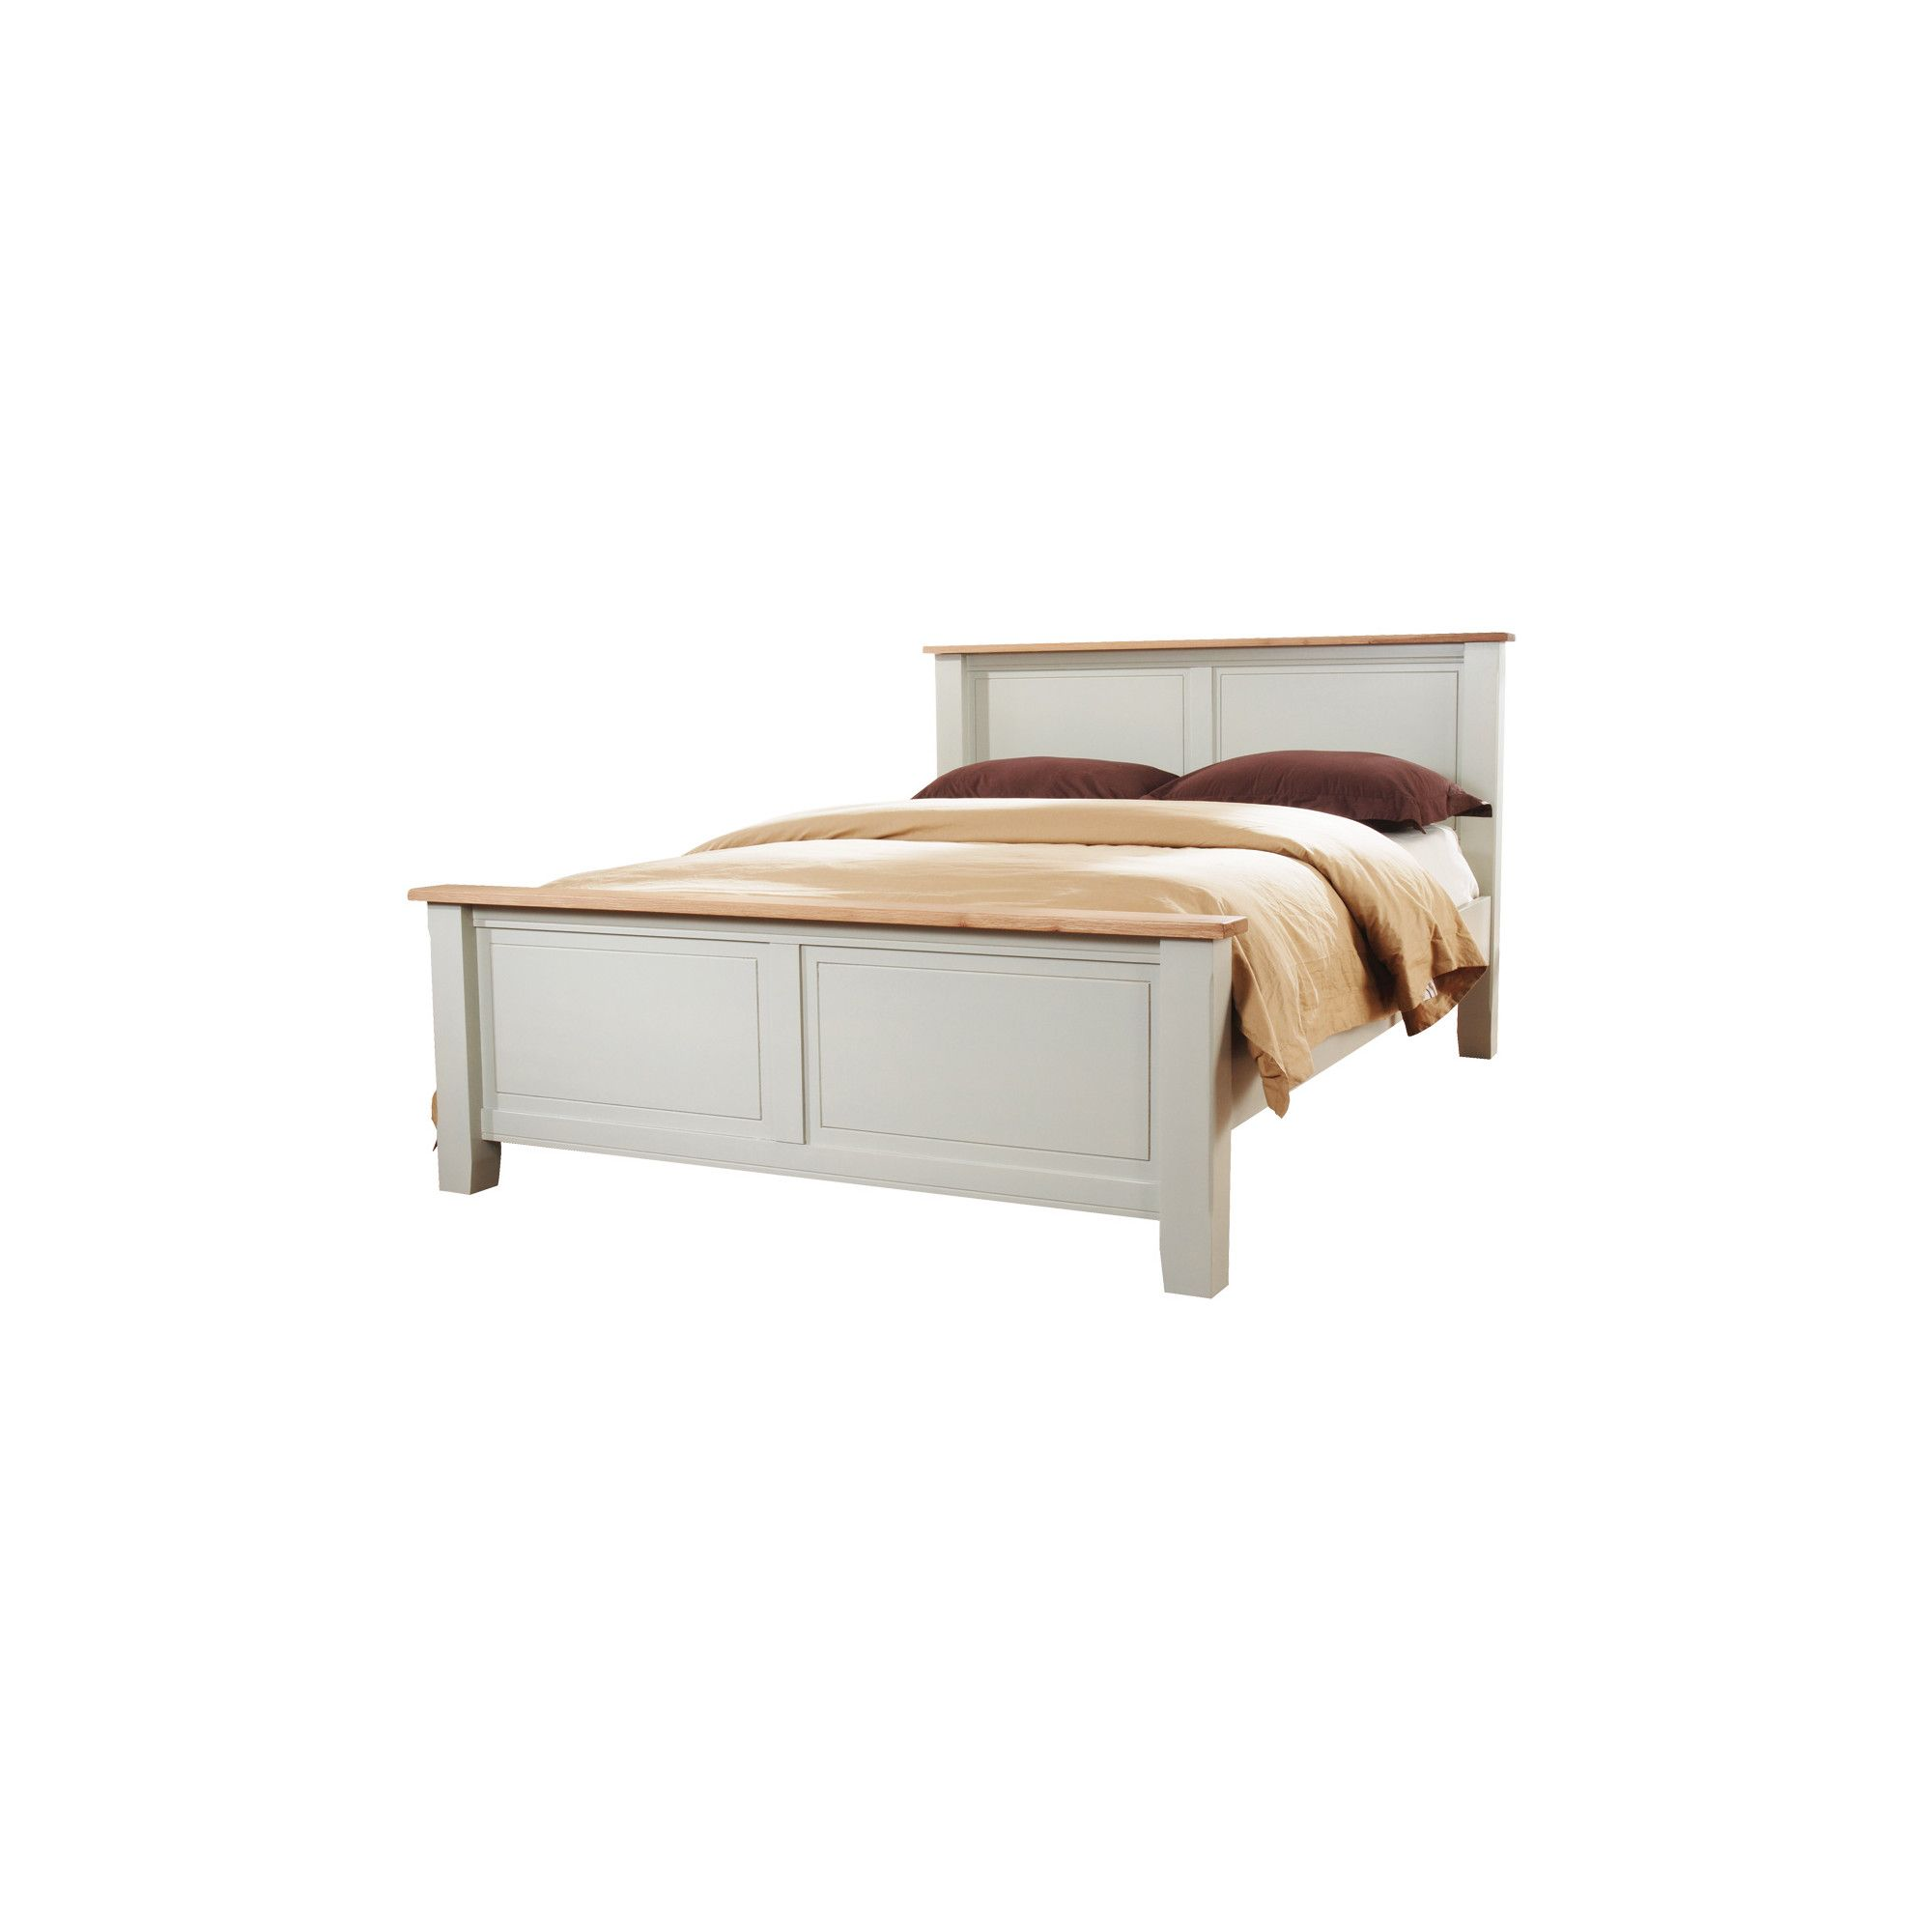 Thorndon Highgrove Bedroom Bed Frame at Tesco Direct